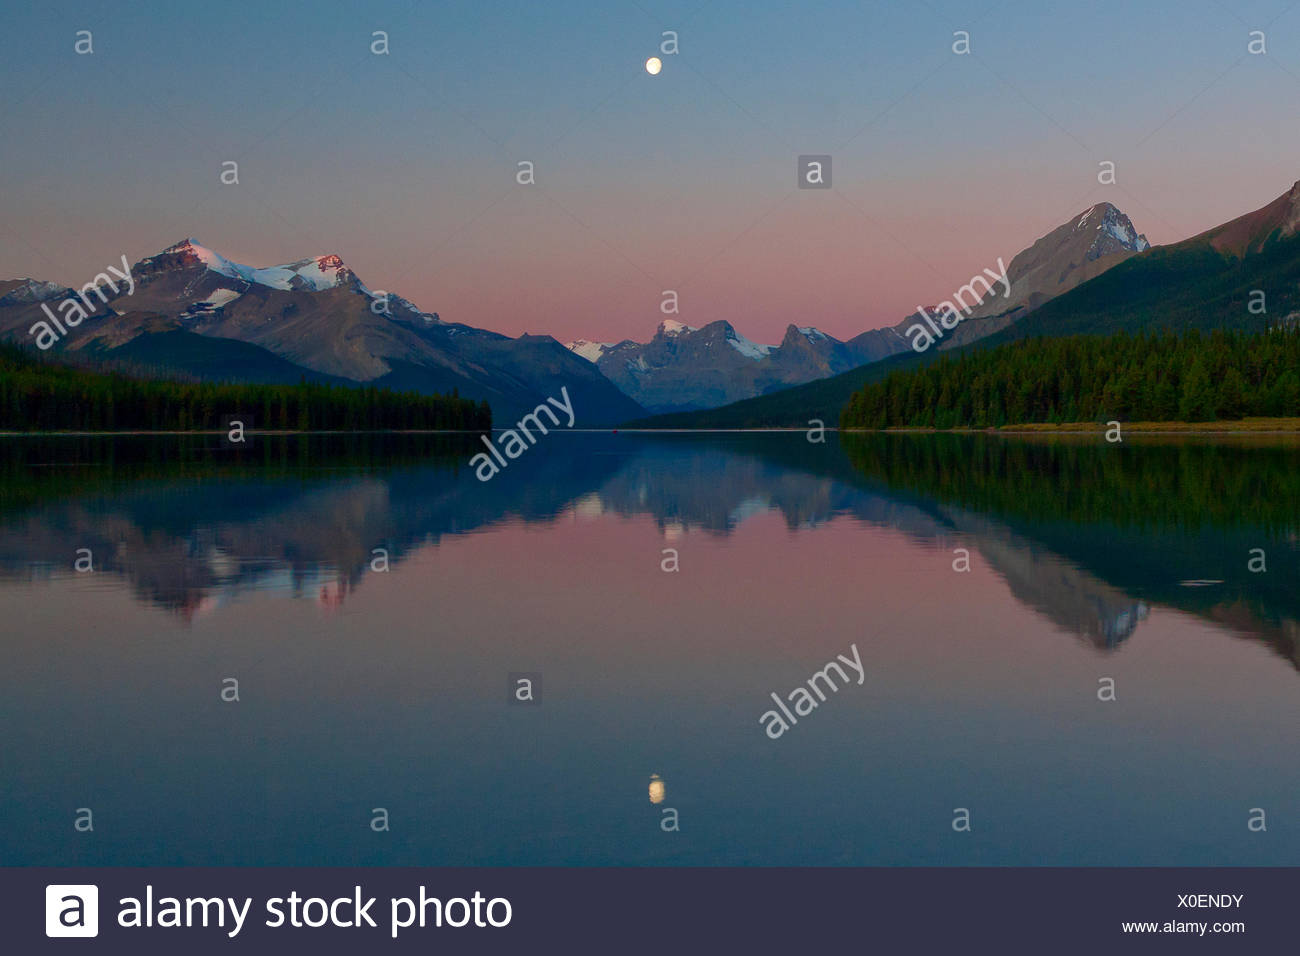 Canada, province, nature, landscape, Rockies, Canadian Rockies, mountains, lake, scenery, Alberta, Jasper, National Park, Malign - Stock Image